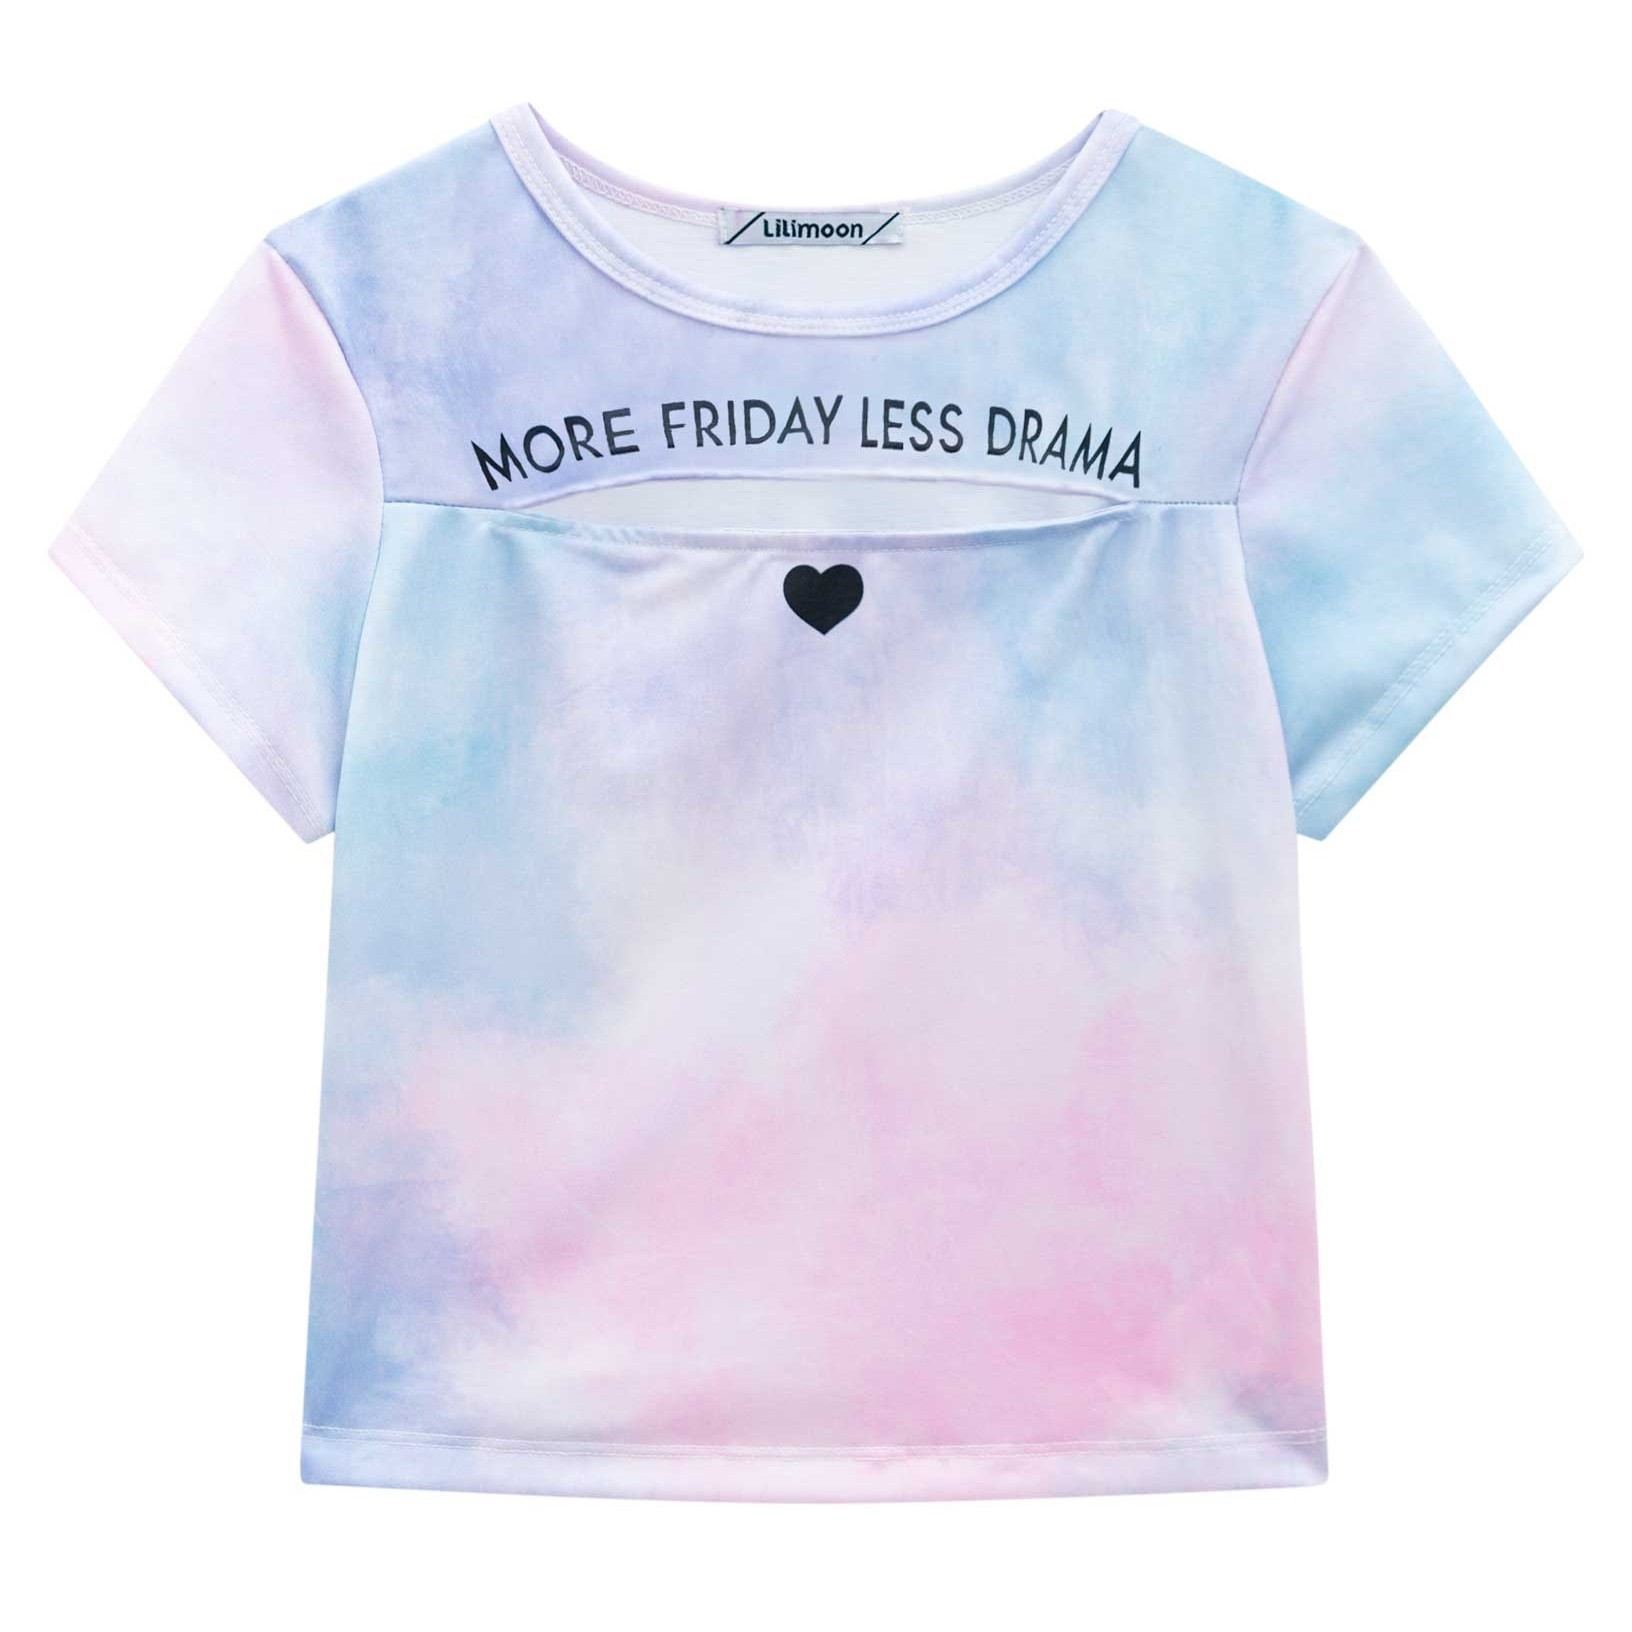 BLUSA CROPEED TIE DYE 'MORE FRIDAY LESS DRAMA' - LILIMOON